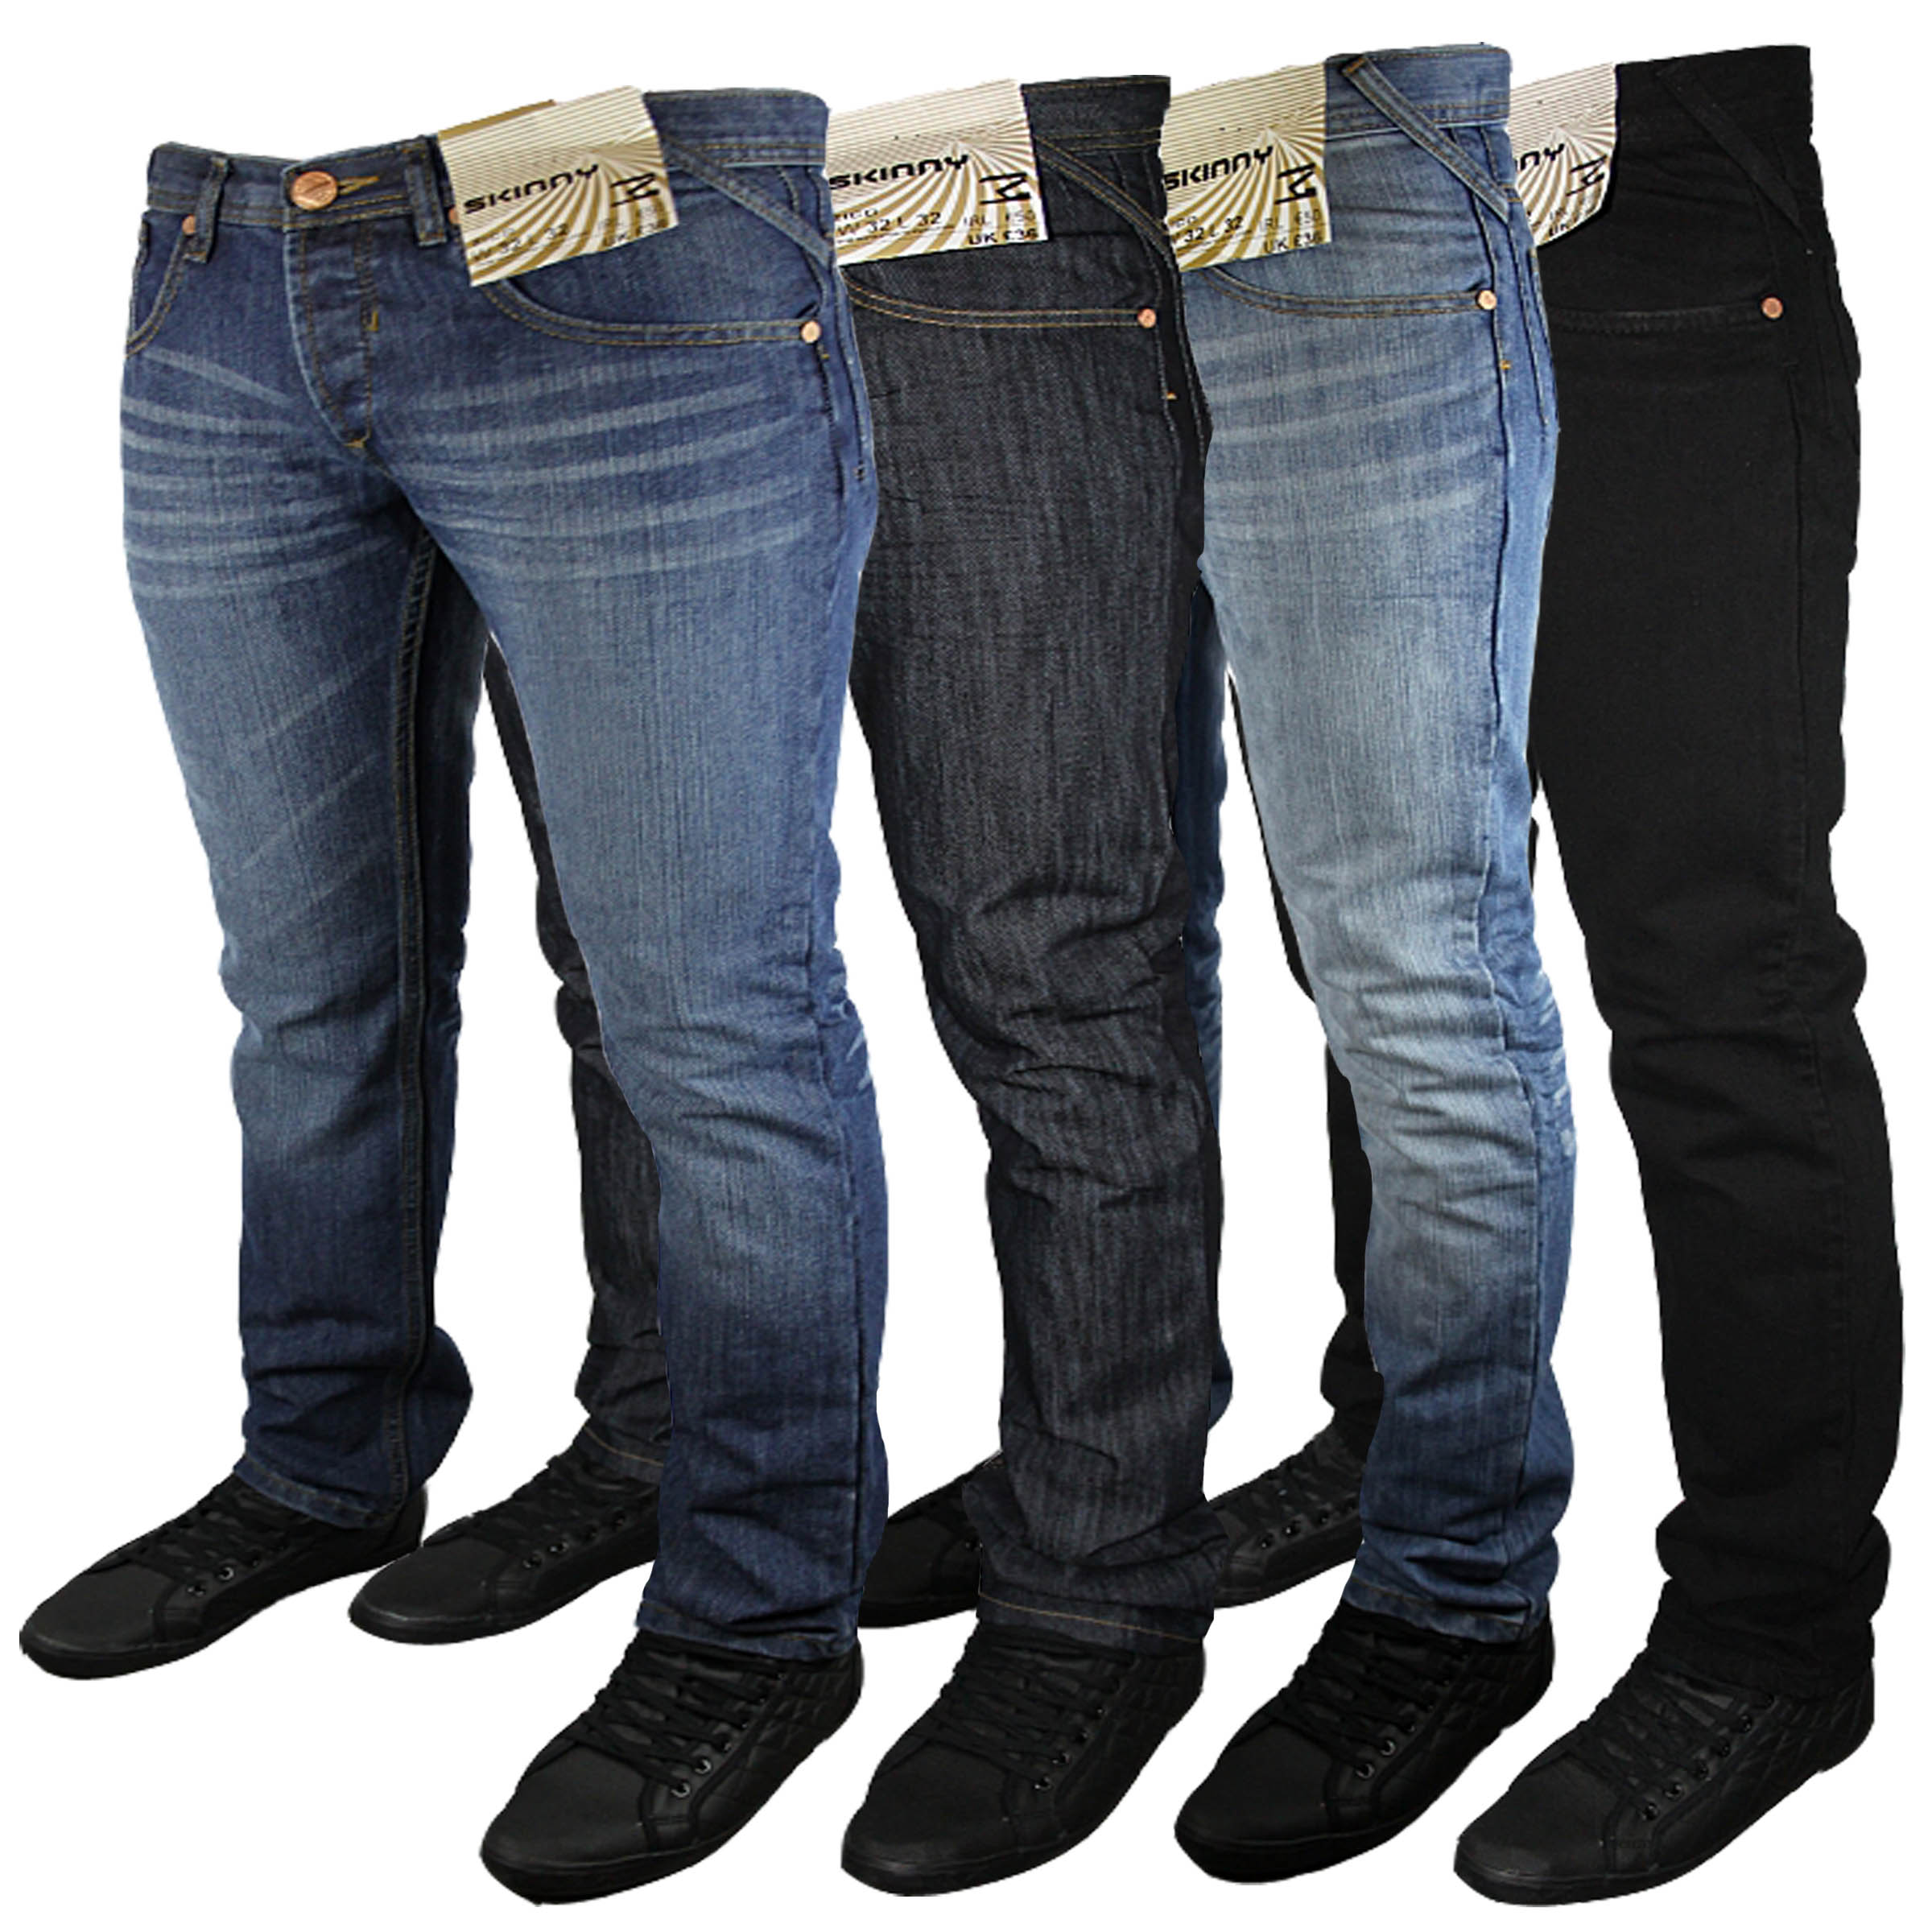 In this article we will talk about top 10 most expensive jeans brands in the world. We all know that jeans are most important part of clothing in western countries but the trends are much changed and they are now famous in other countries as well.